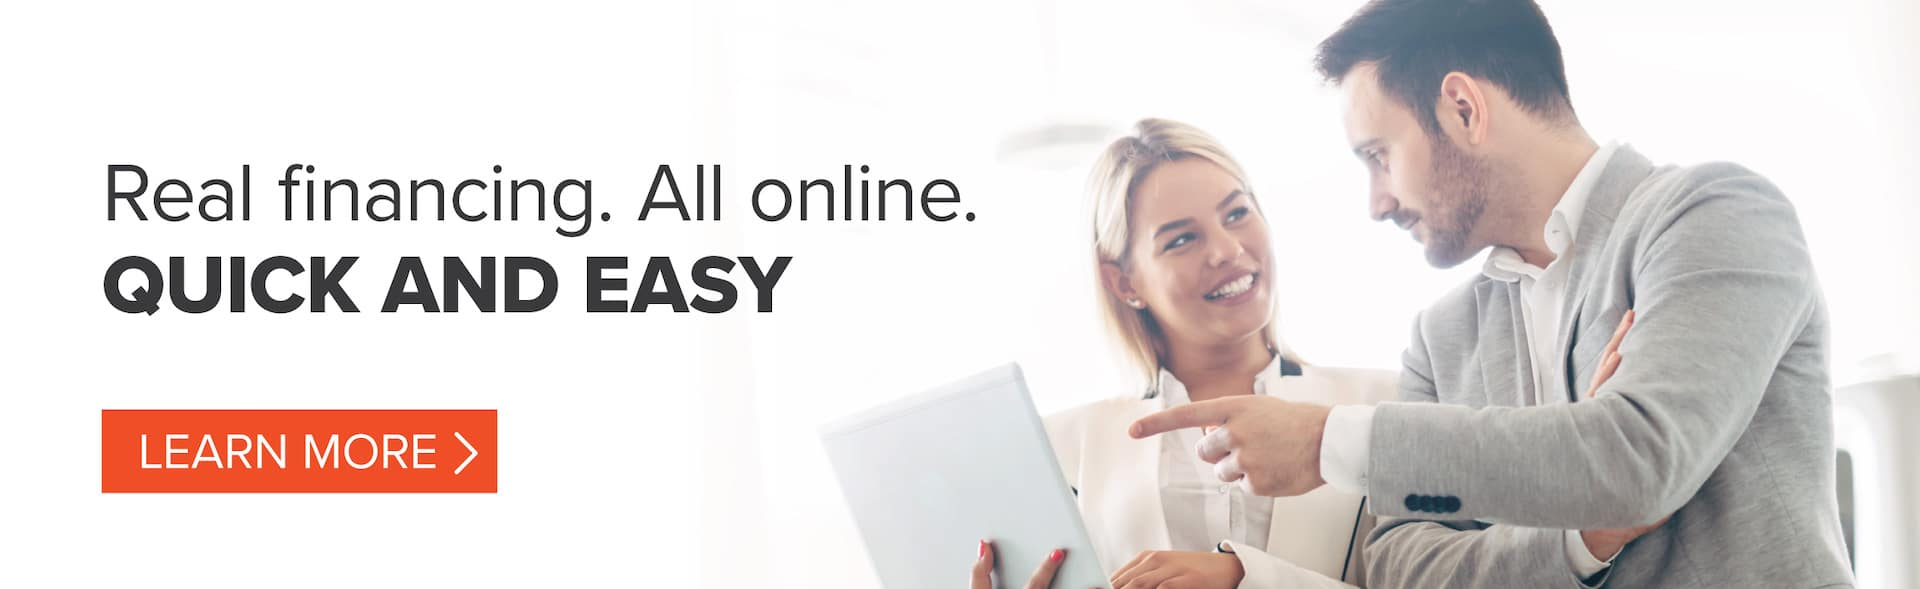 real finance. all online. quick and easy